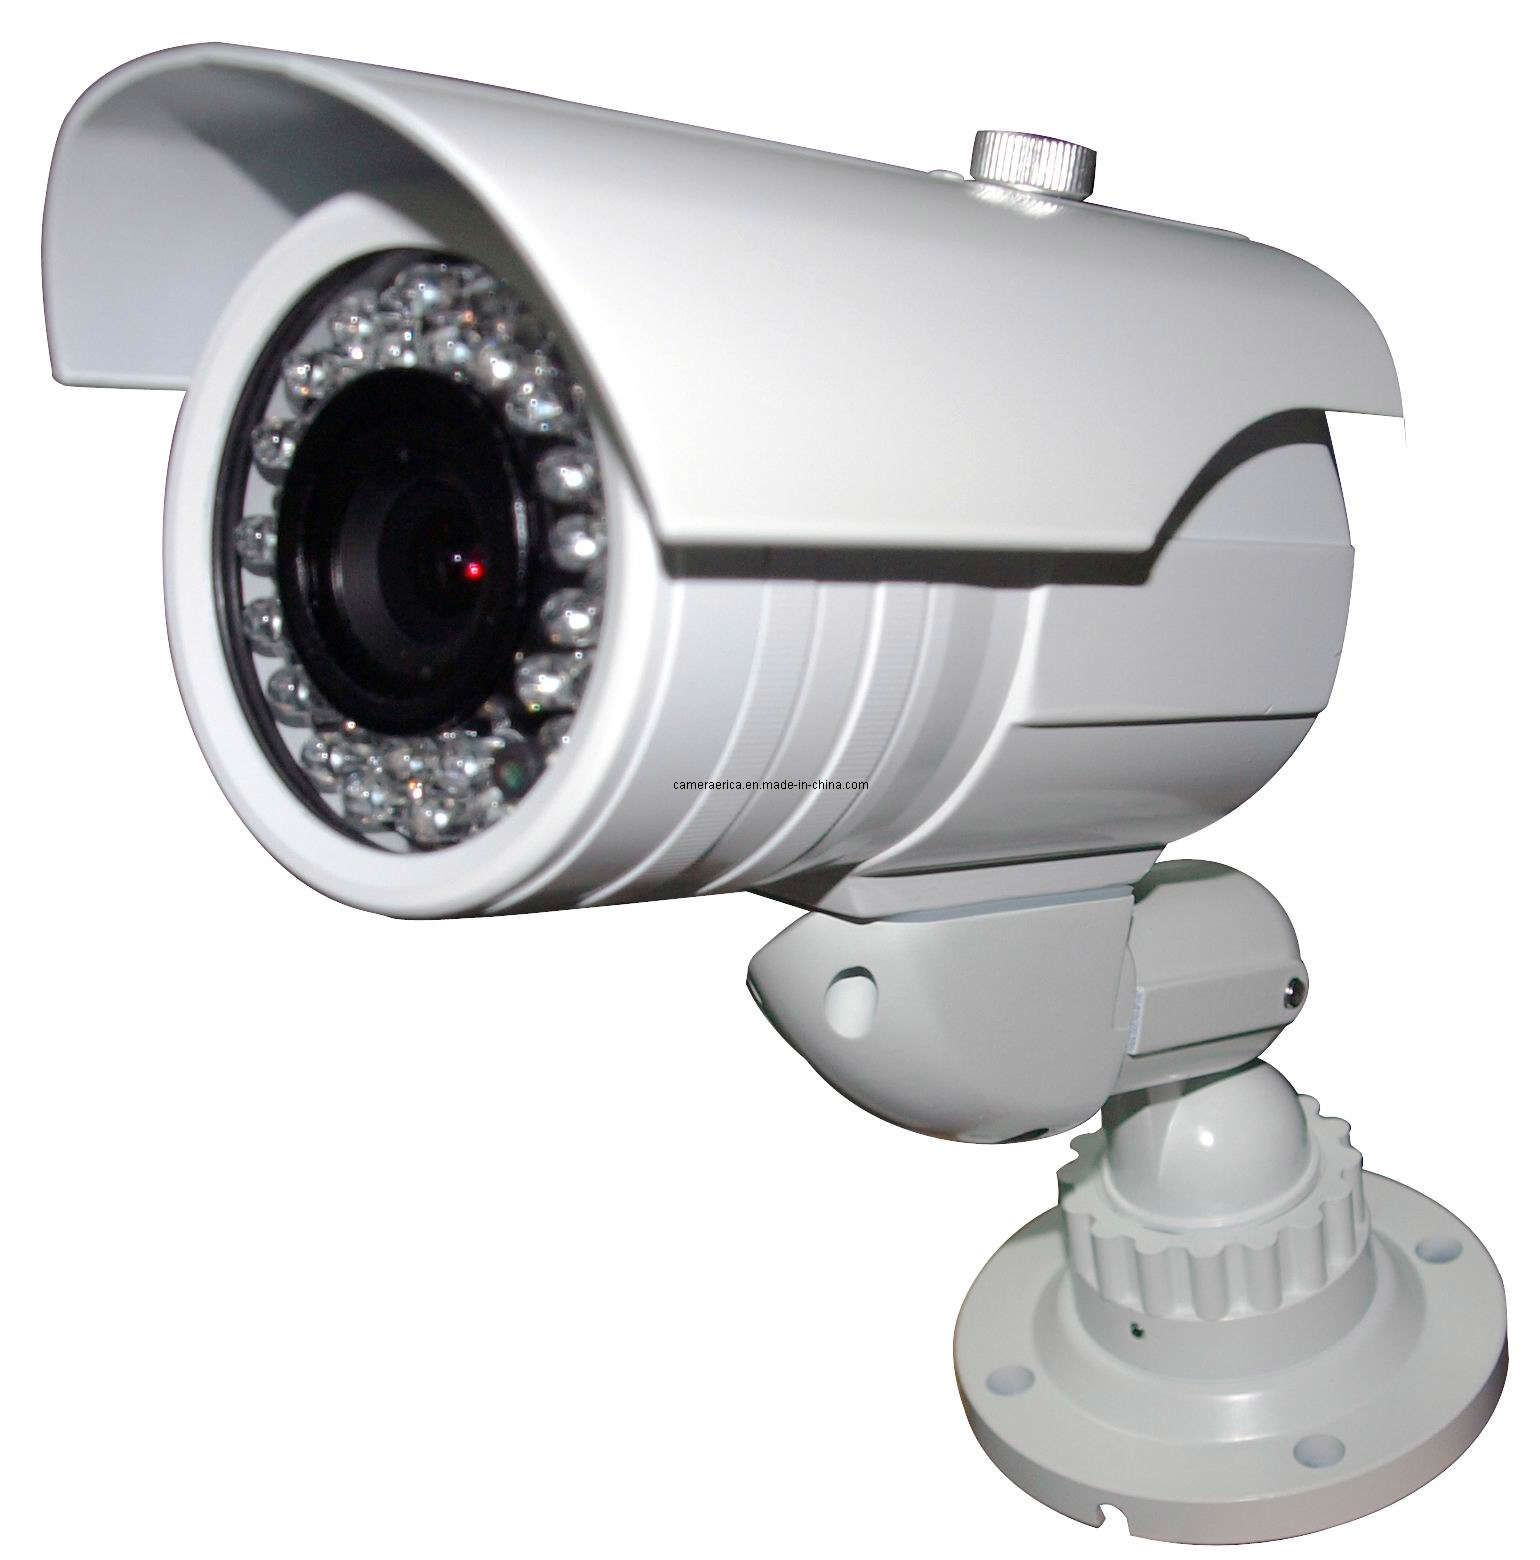 Security Camera Installs Sgi Offer Great Deals On Best Quality Hd Cctv Hd Sdi Cc Home Security Tips Security Cameras For Home Wireless Home Security Systems